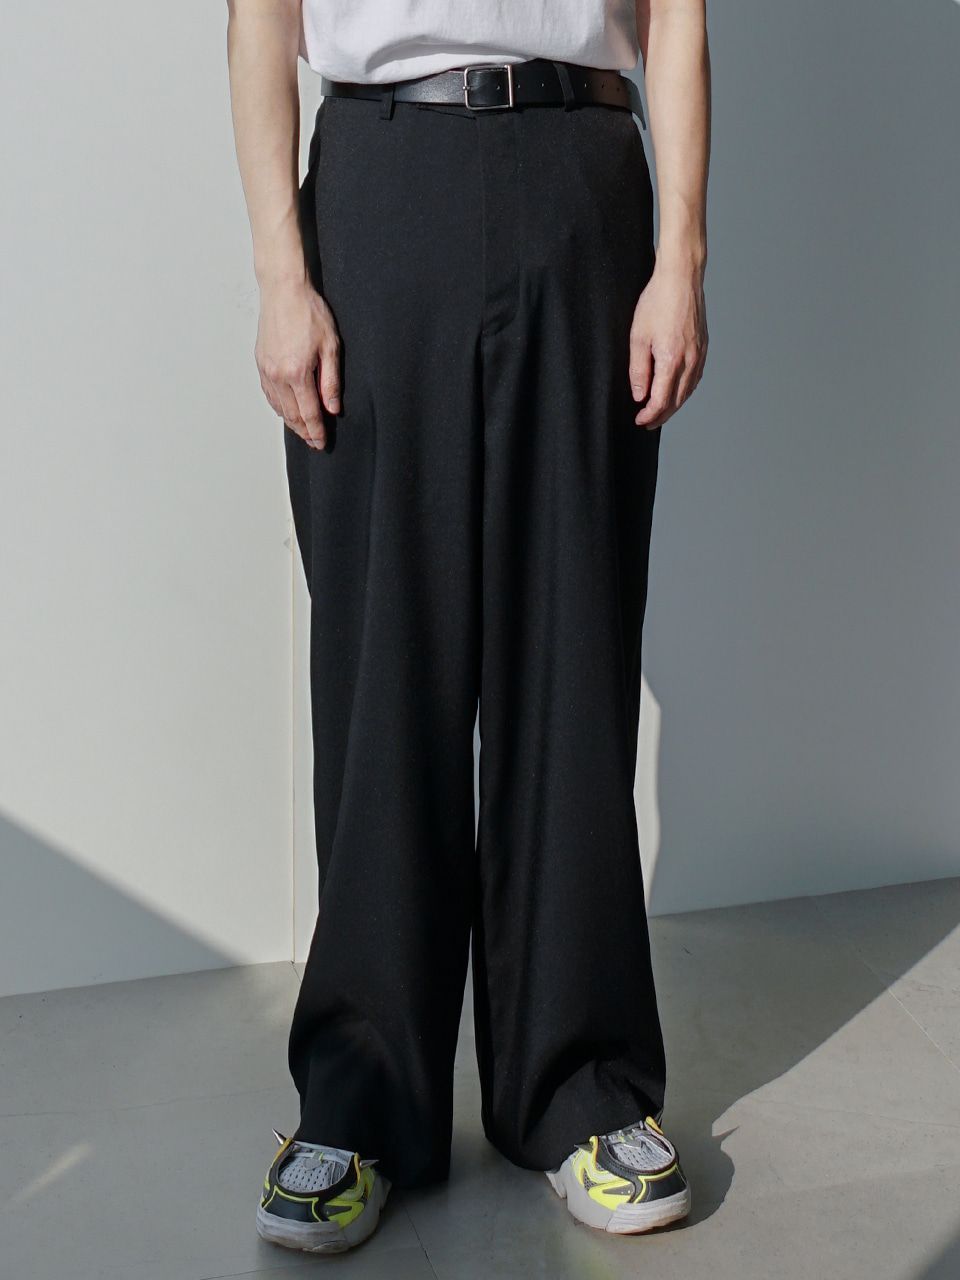 Mount Wide Trousers (2color)